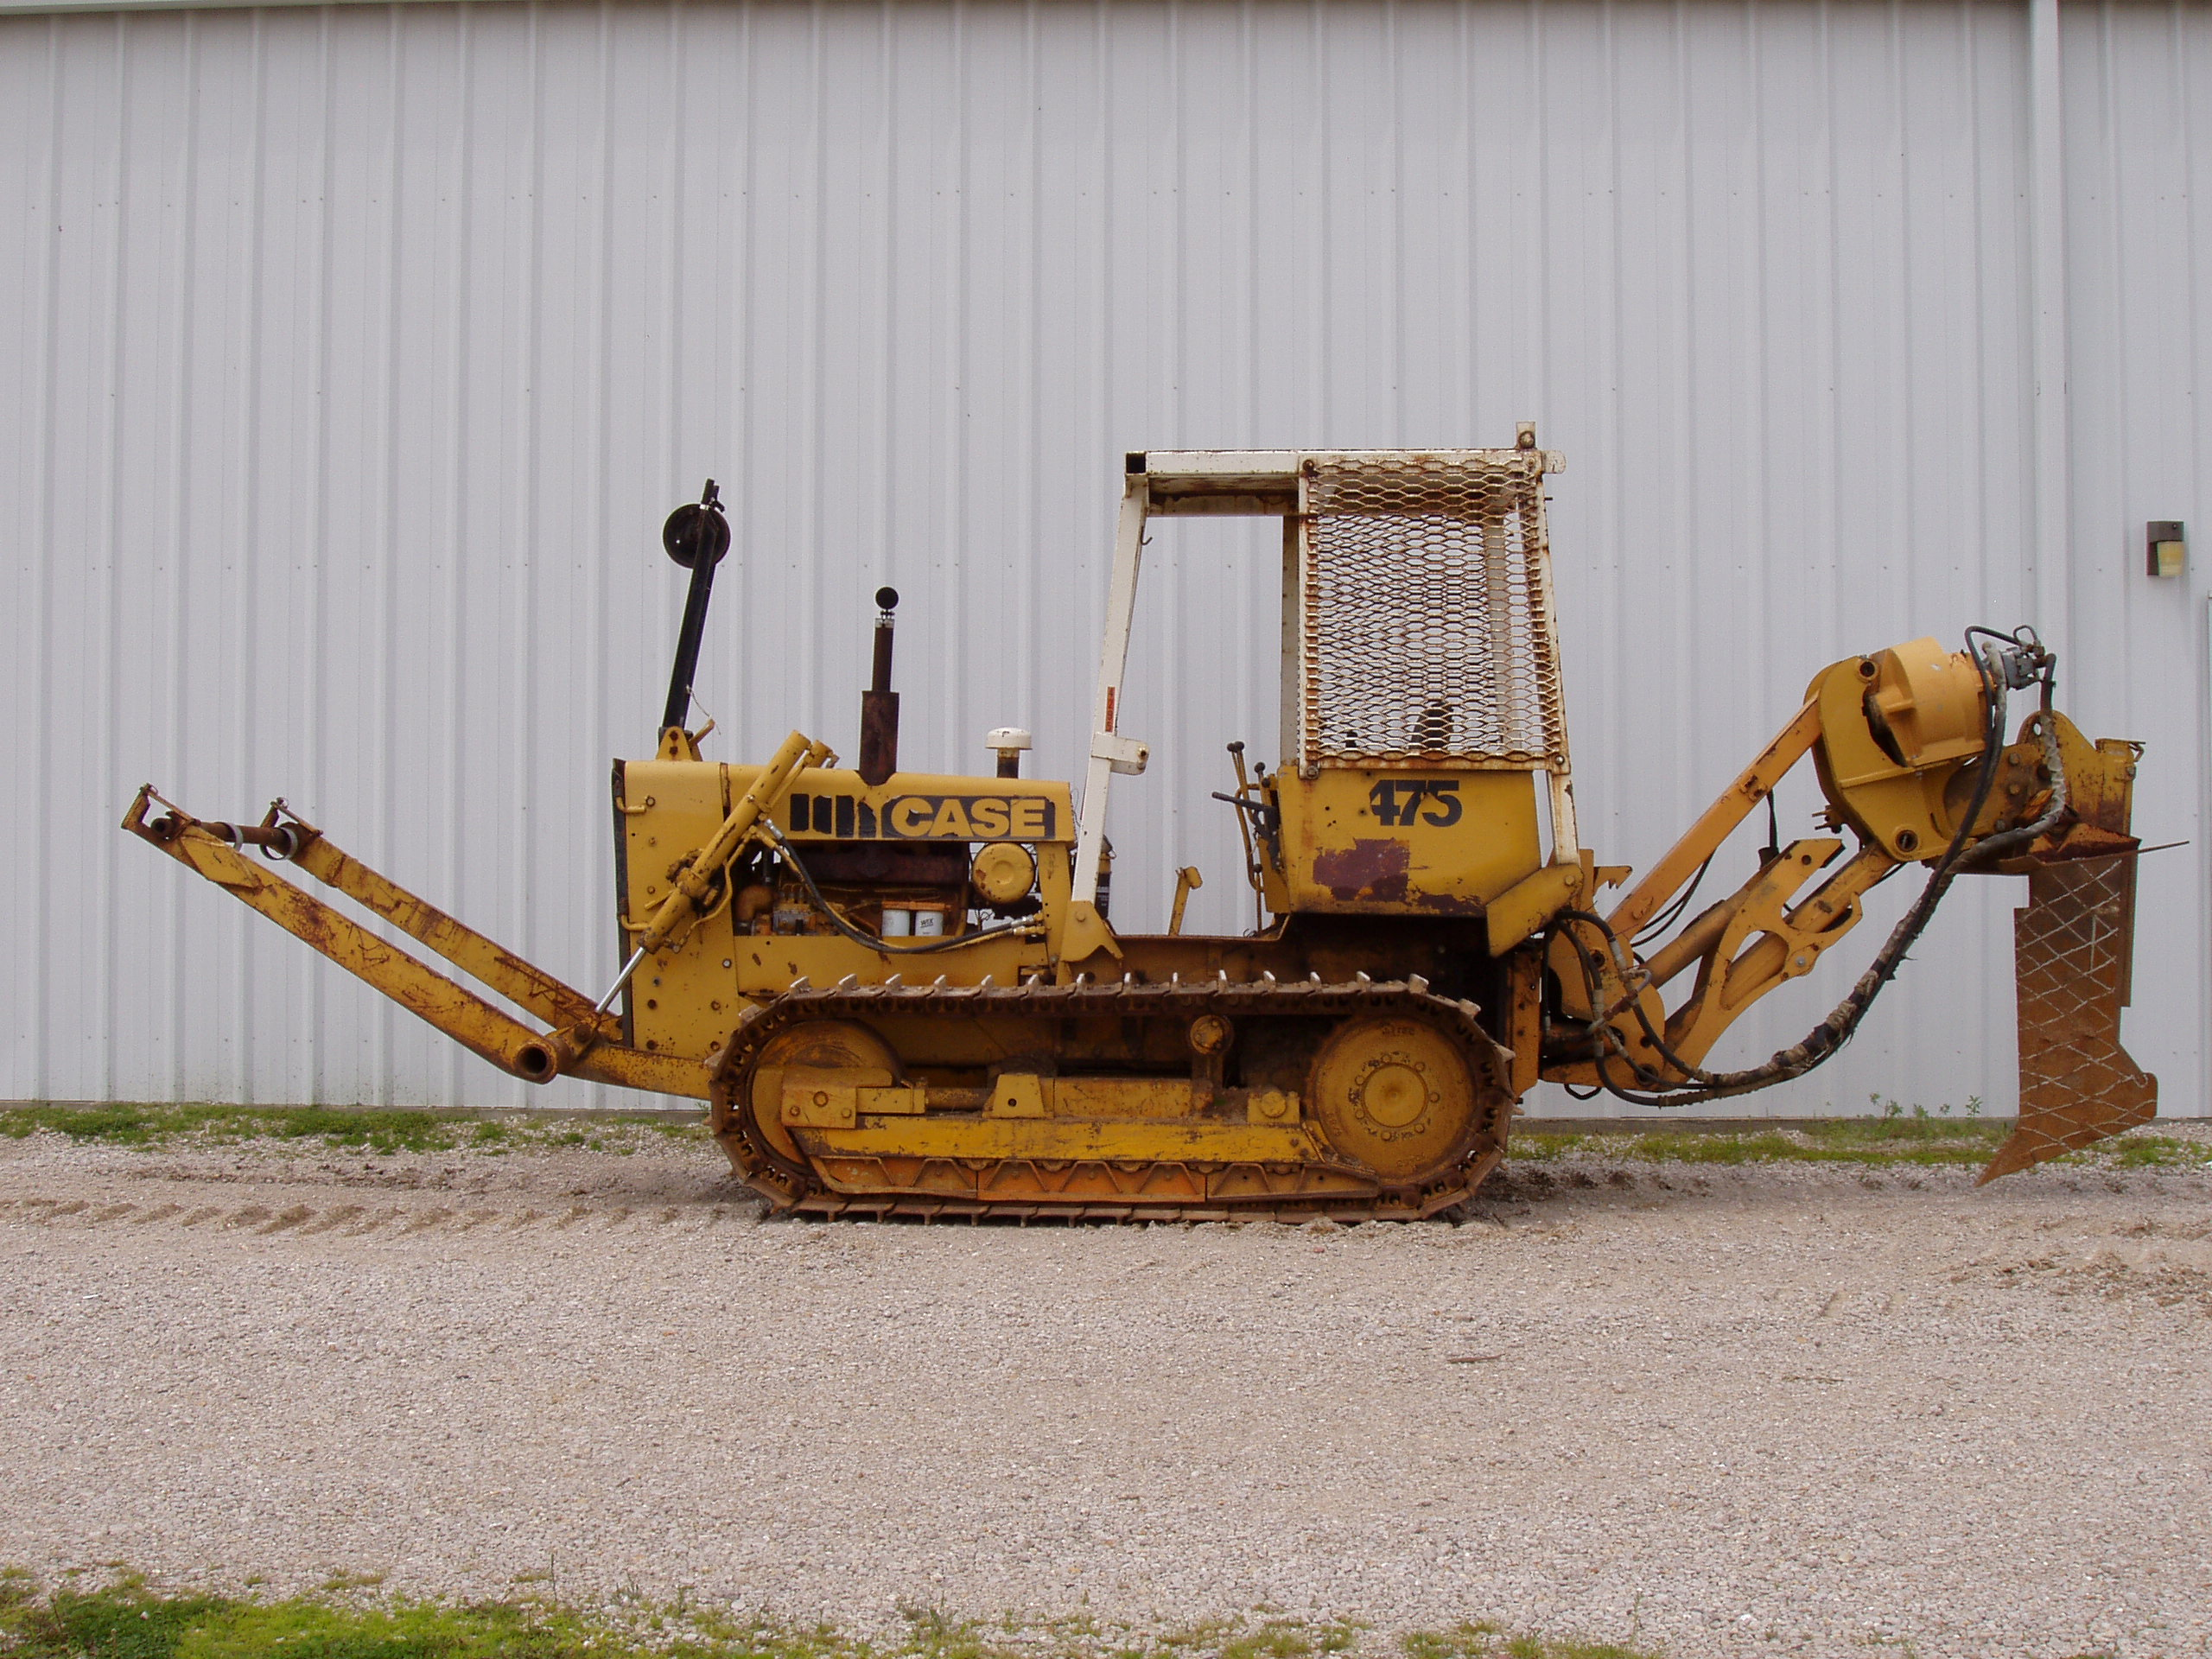 Contact Garner Equipment about this Case 475 cable plow with Case 860 steerable plow attachment.